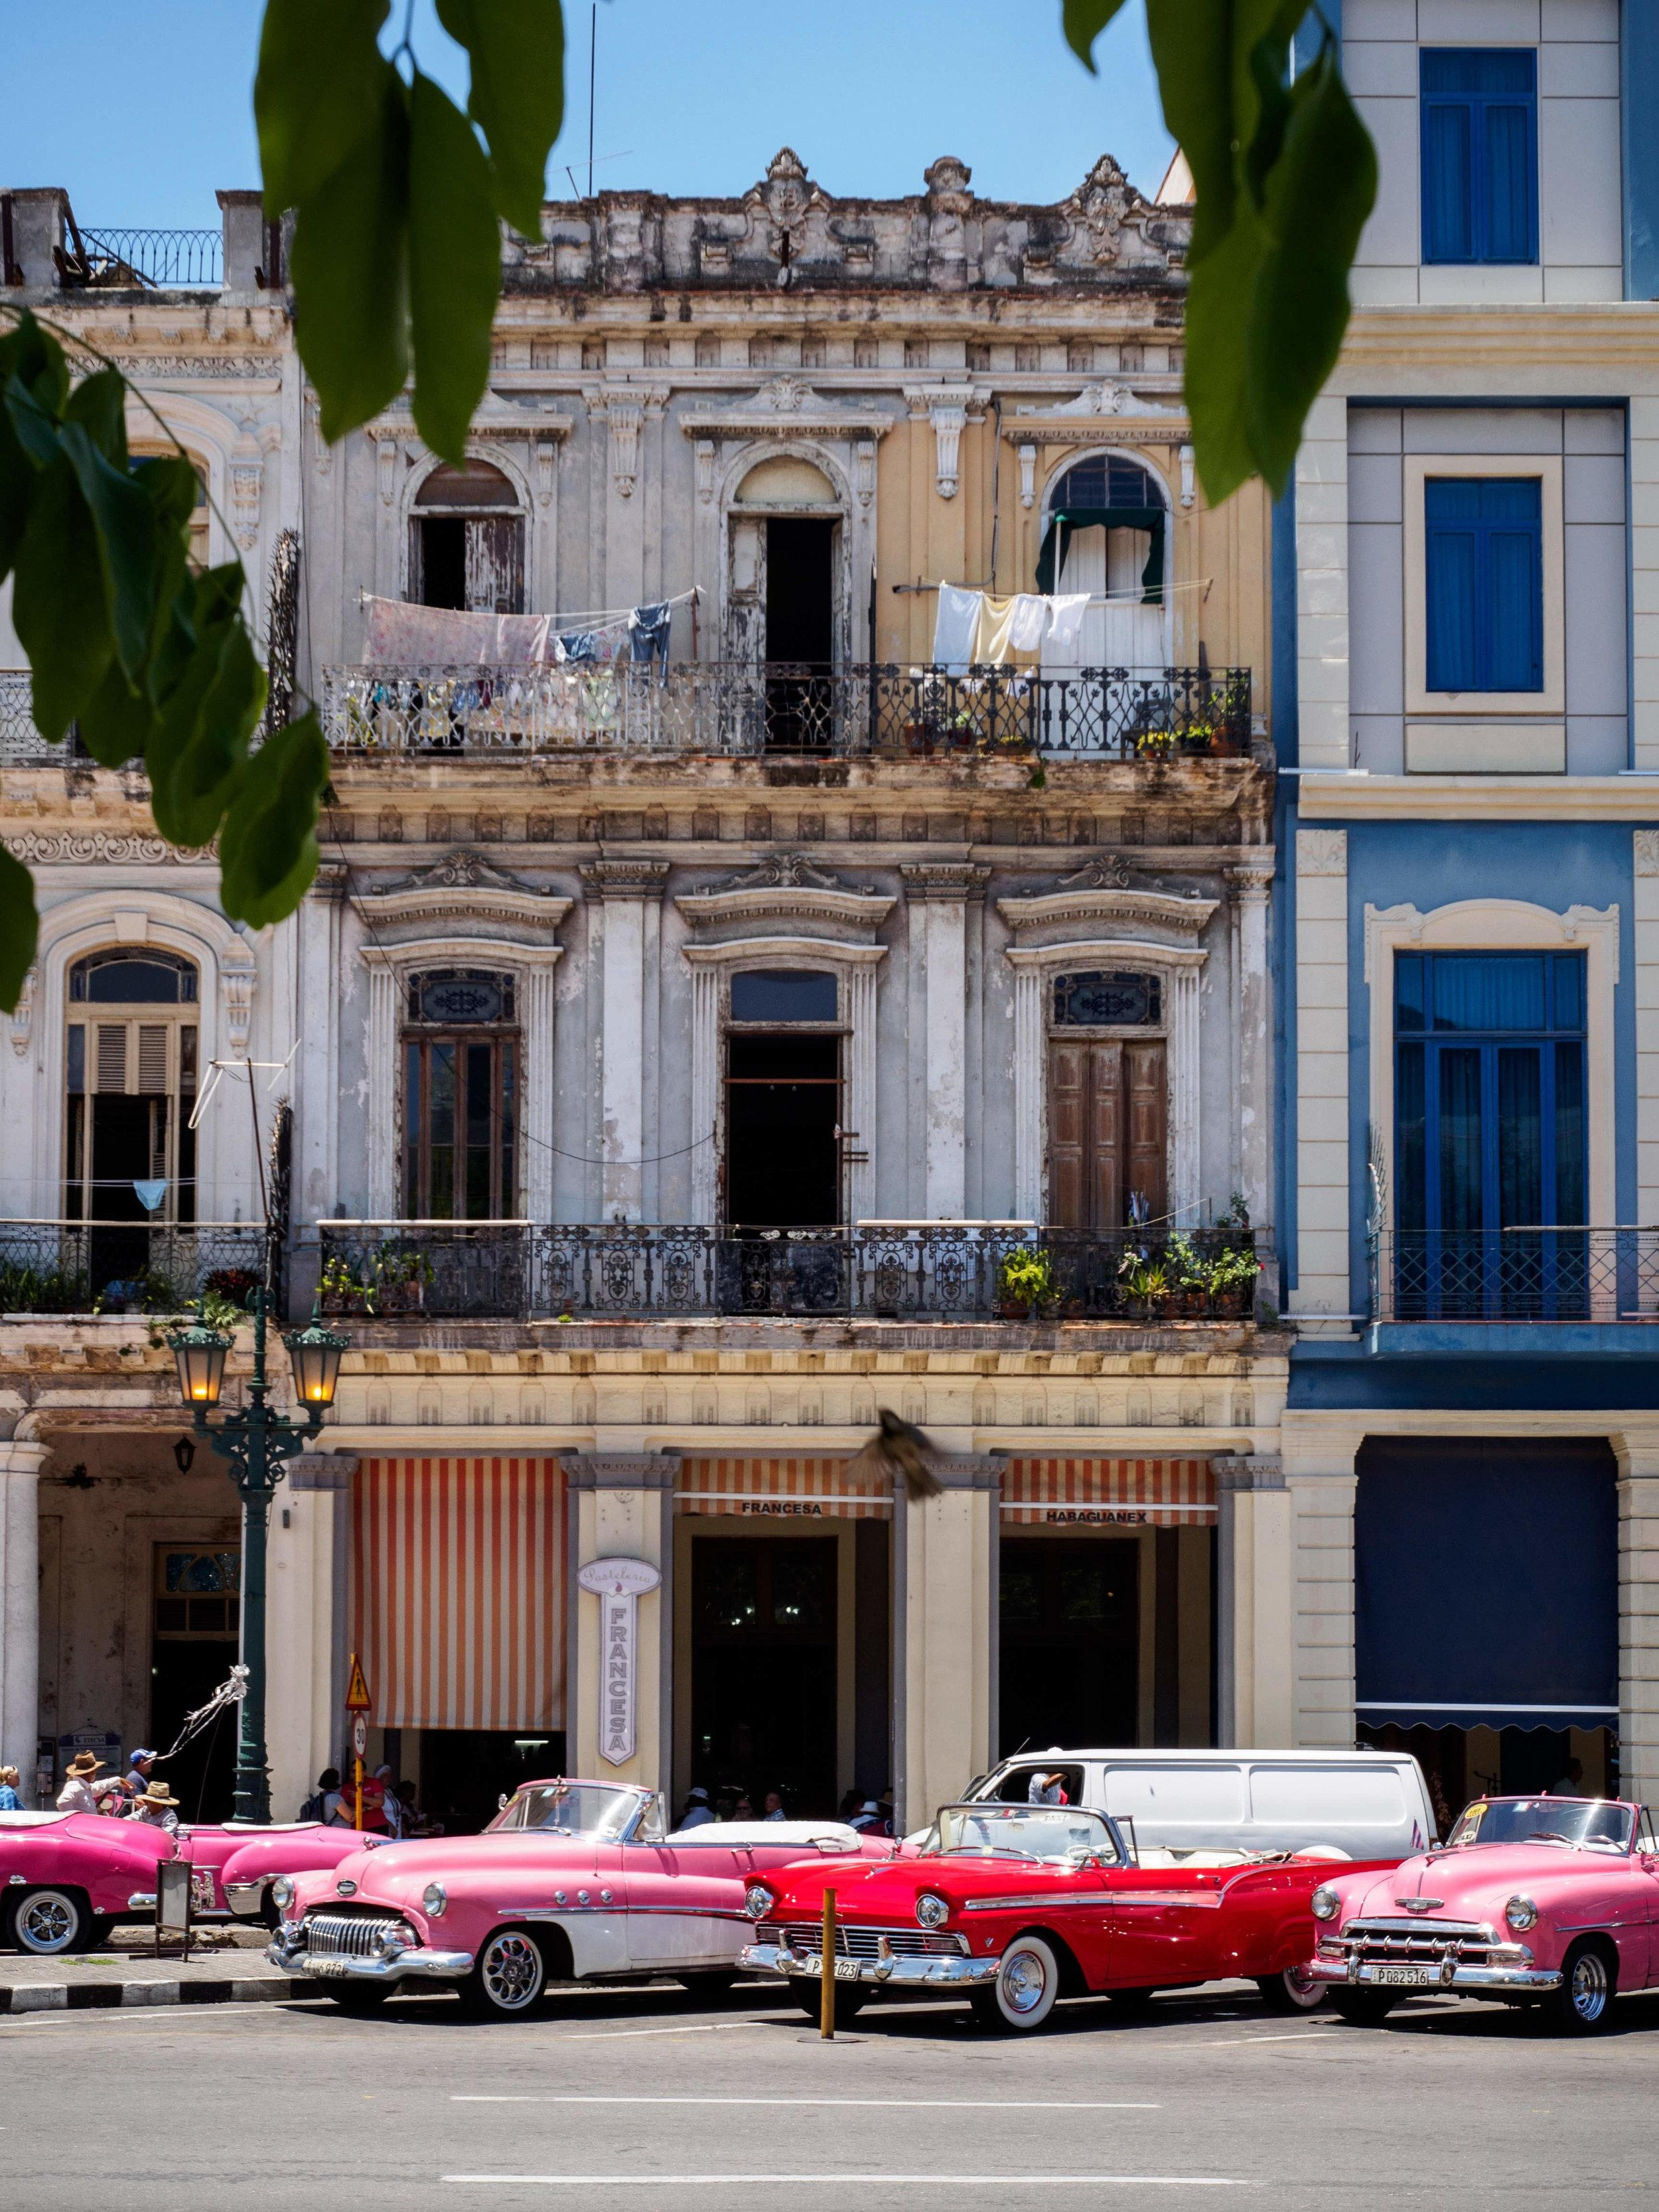 10-days-in-cuba-what-to-do.jpg